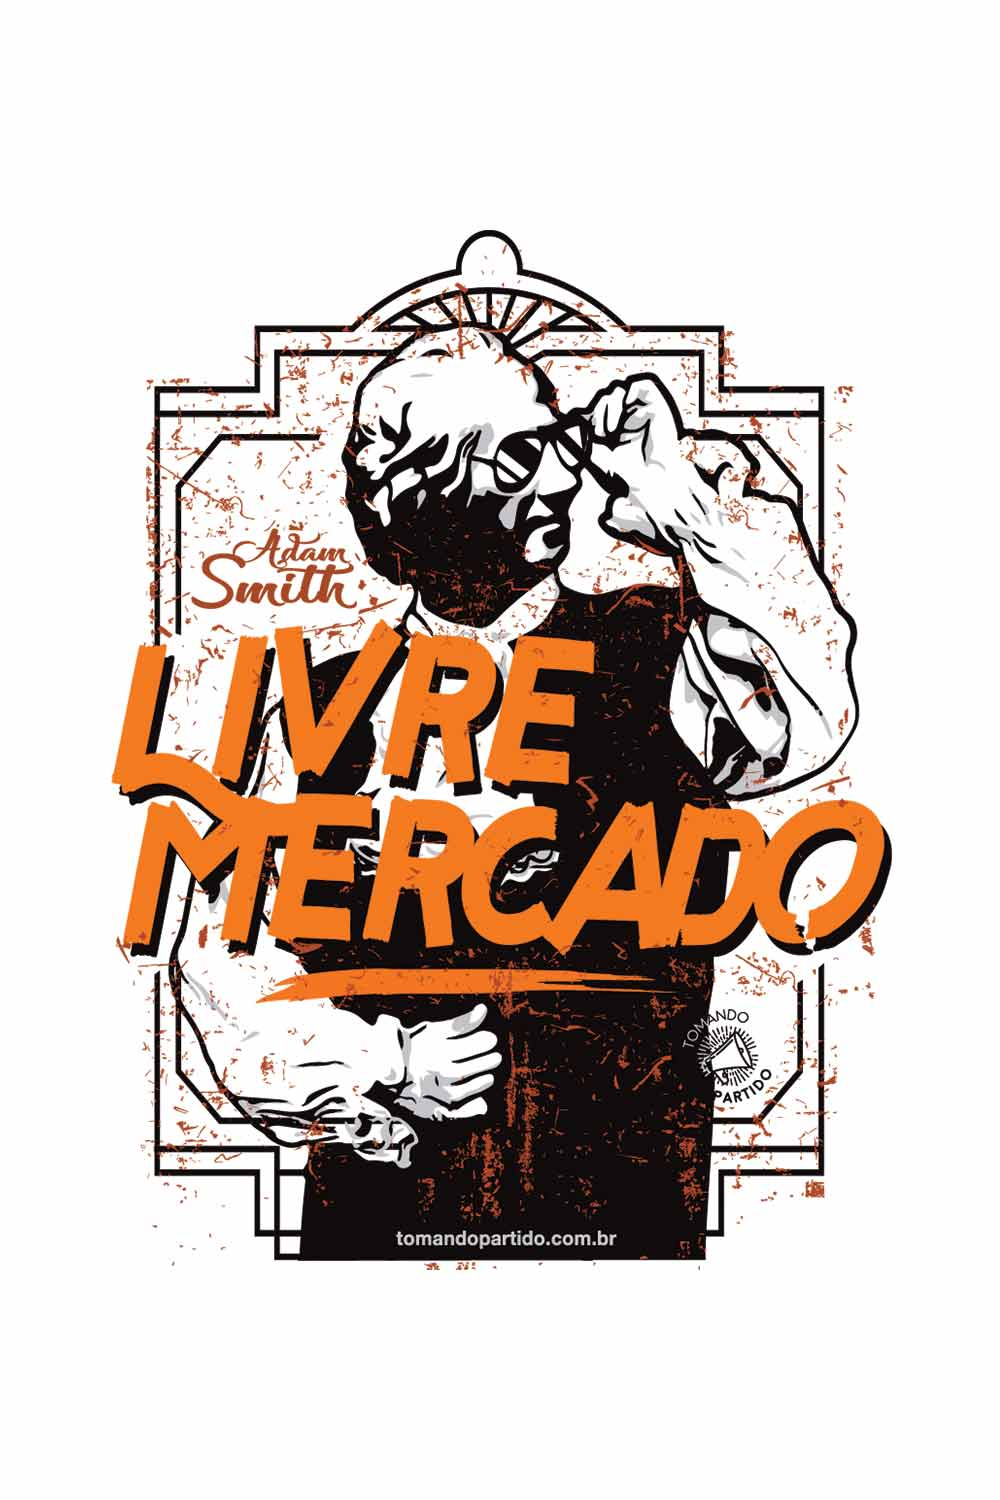 Camiseta  - Adam Smith Livre Mercado